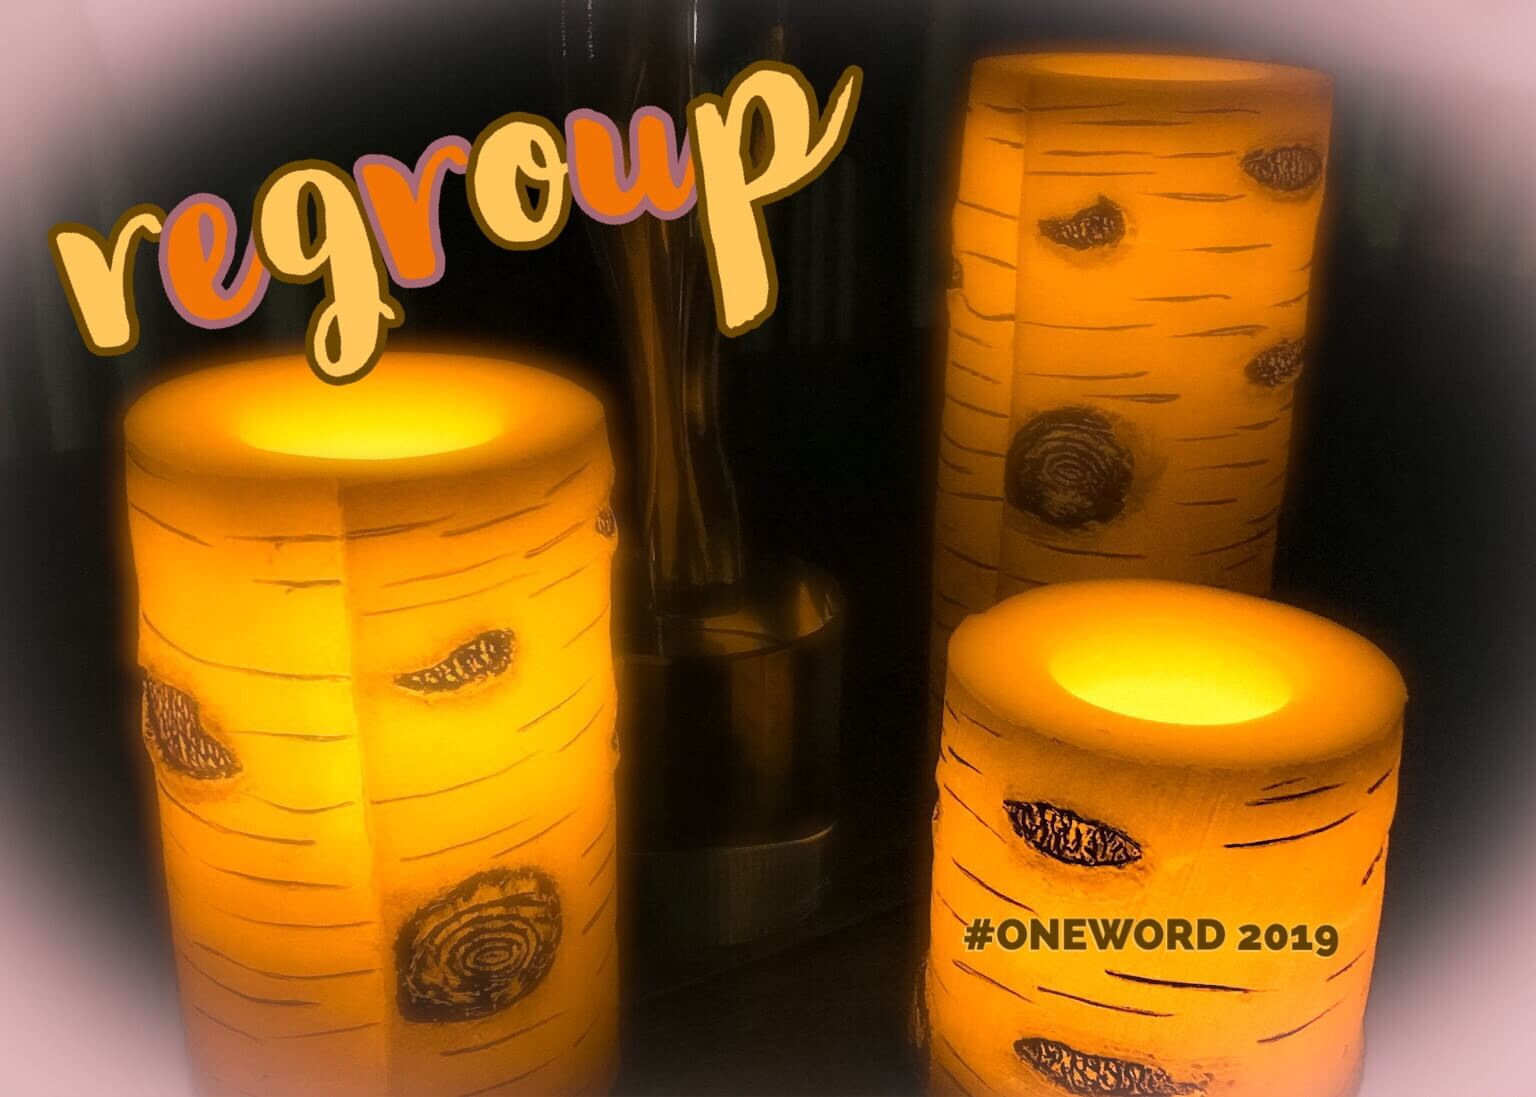 #oneword 2019 regroup candle grouping